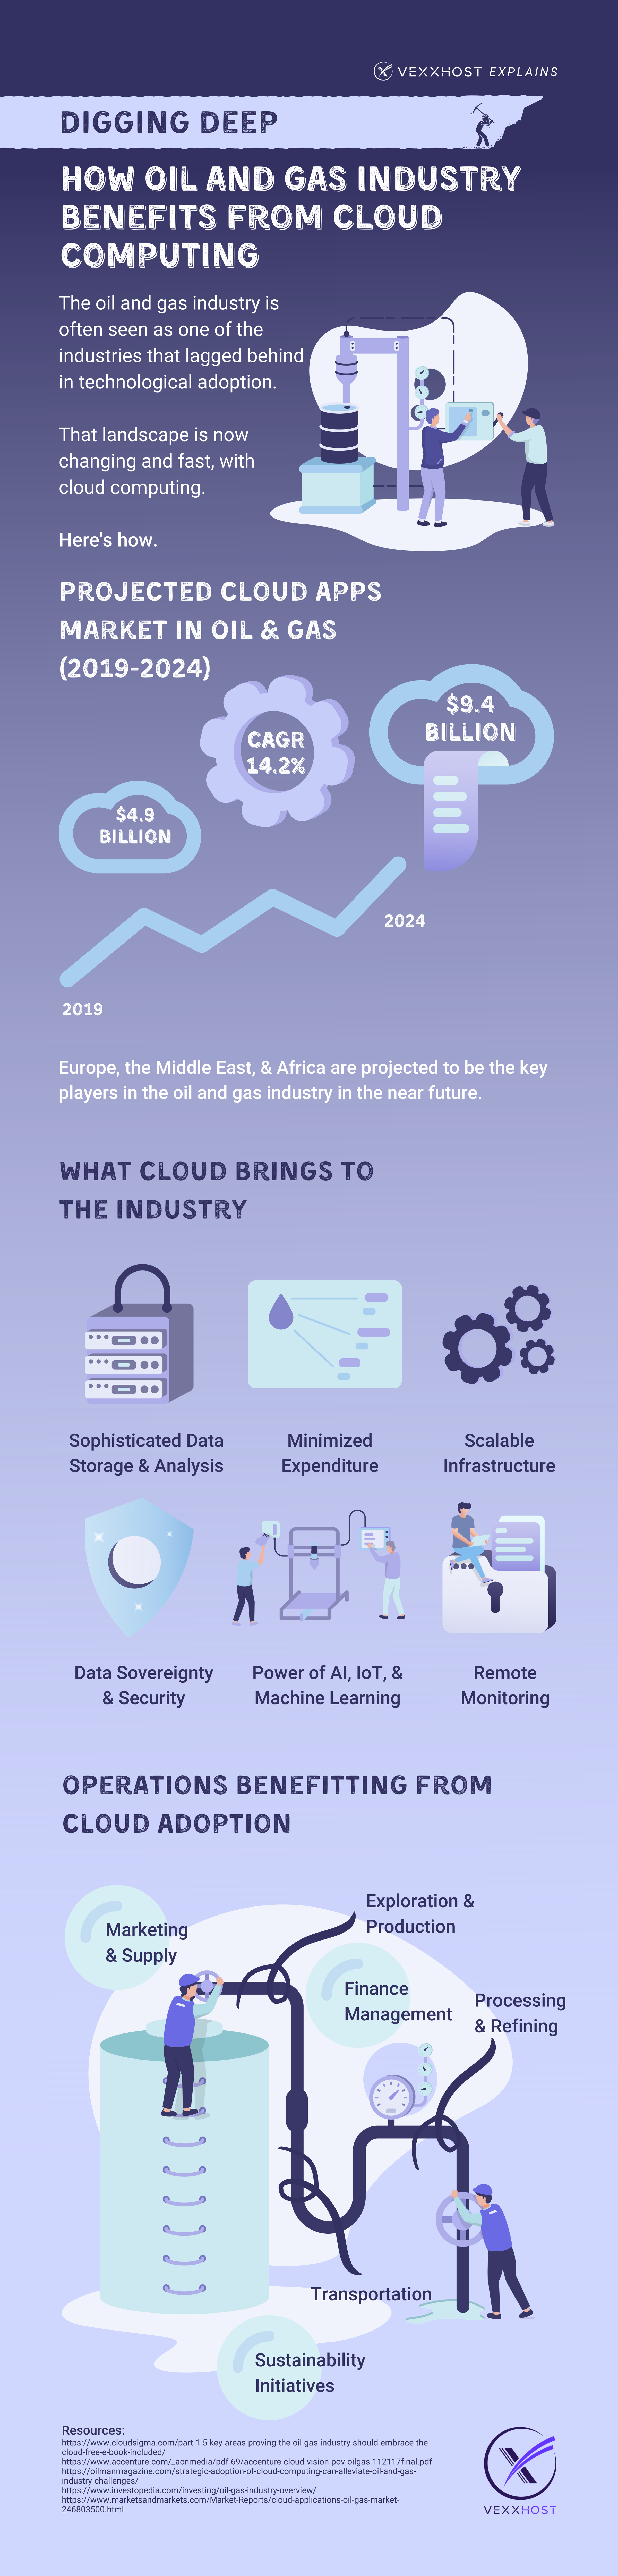 Digging Deep - How Oil and Gas Industry Benefits from Cloud Computing